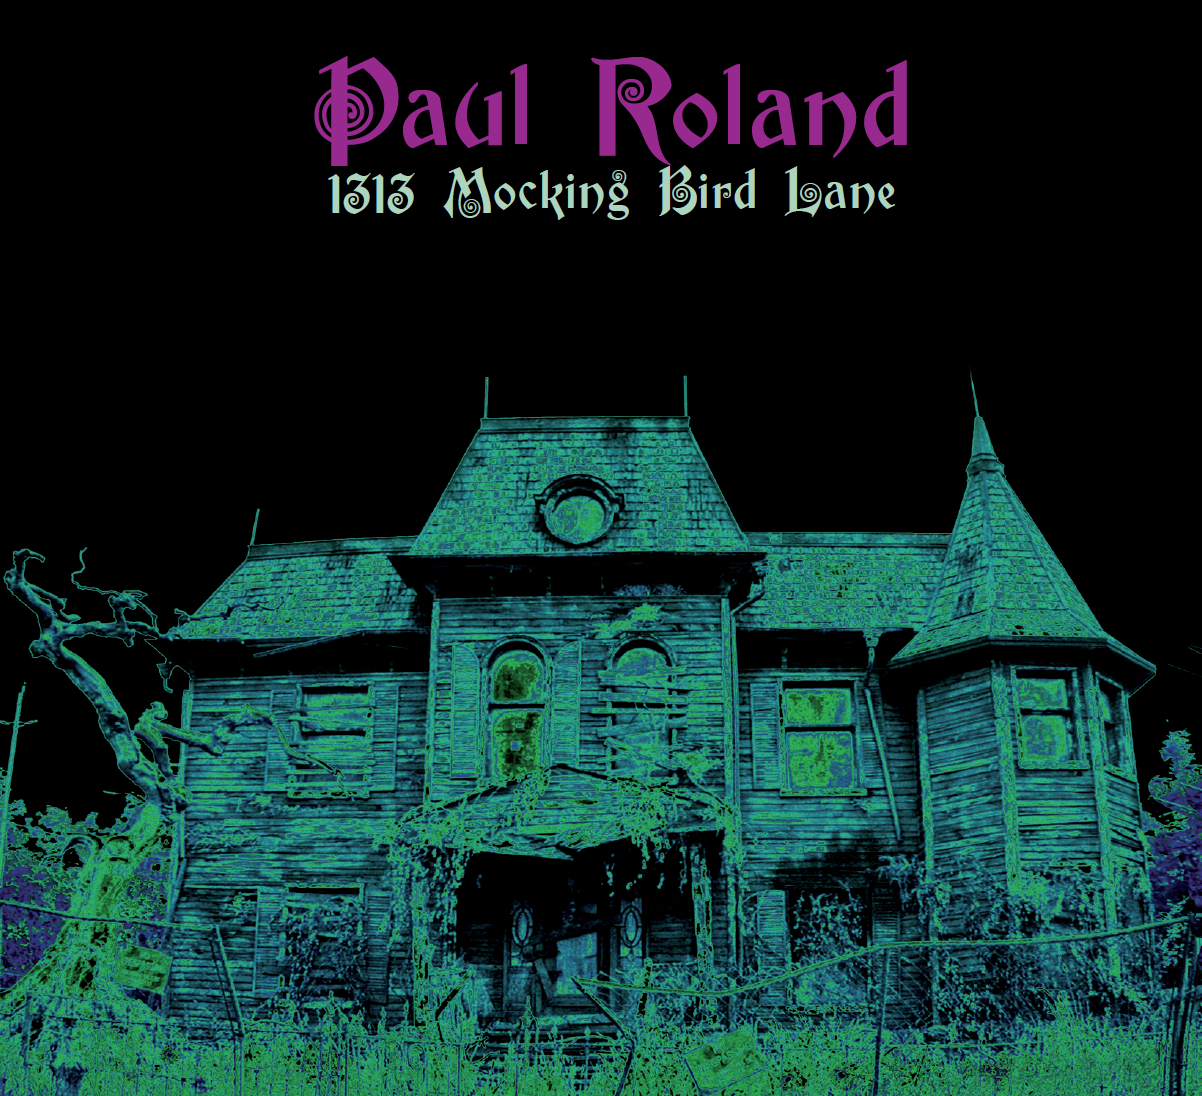 Paul Roland - 1313 Mocking Bird Lane CD + Summer of Love  EP